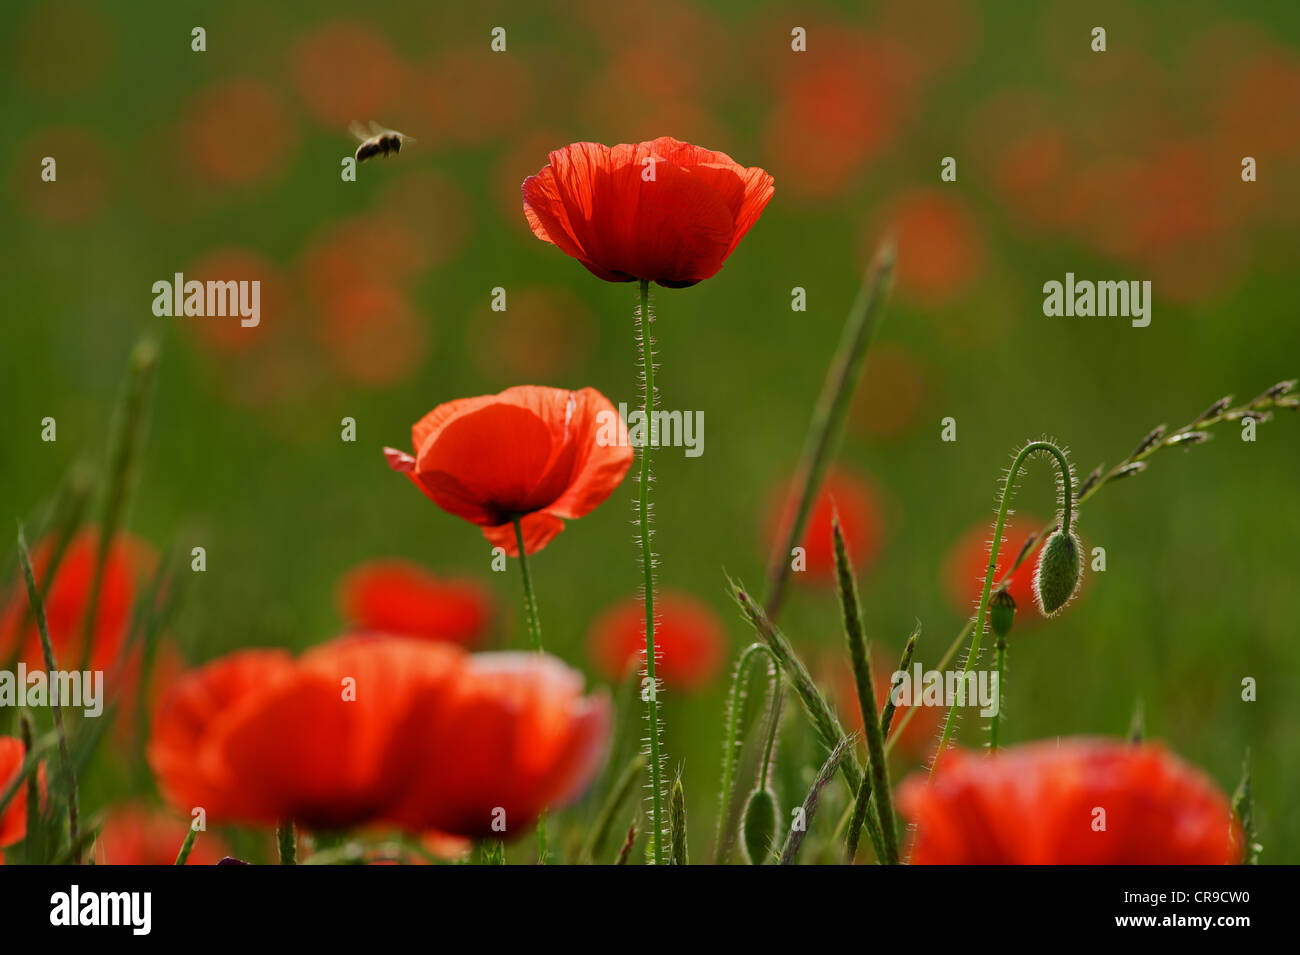 Poppies in the field with approaching bee - Stock Image